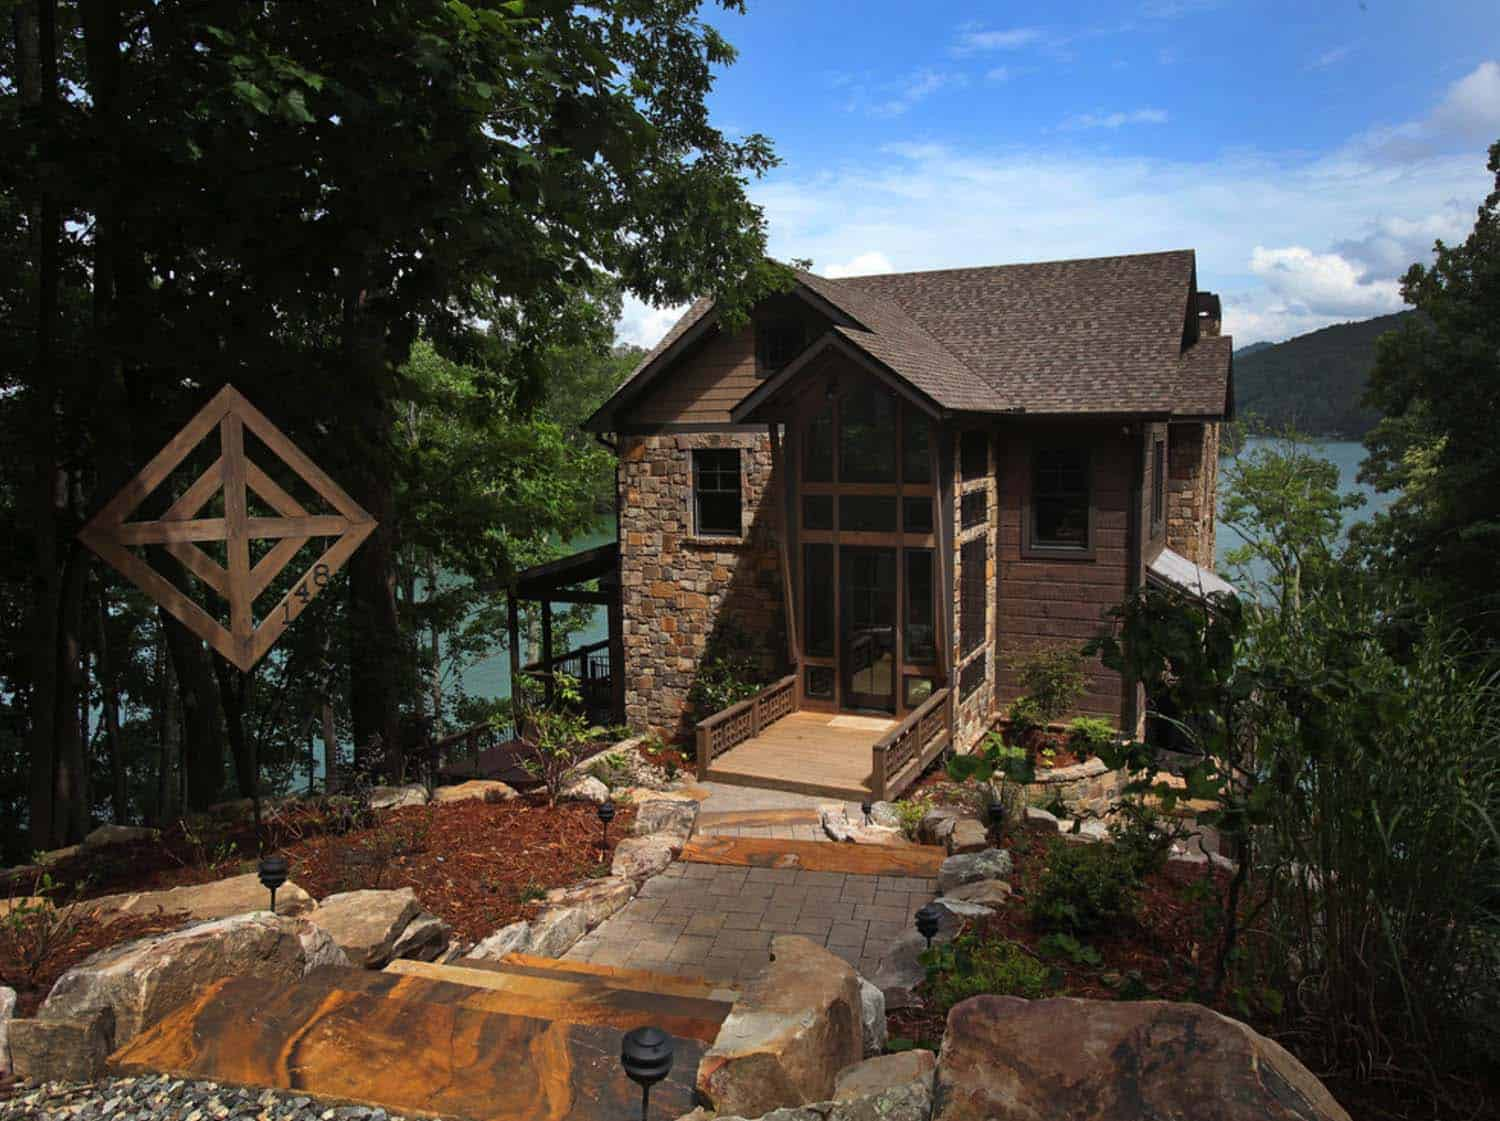 Stunning modern rustic cabin design ideas liltigertoo for Rustic lodge